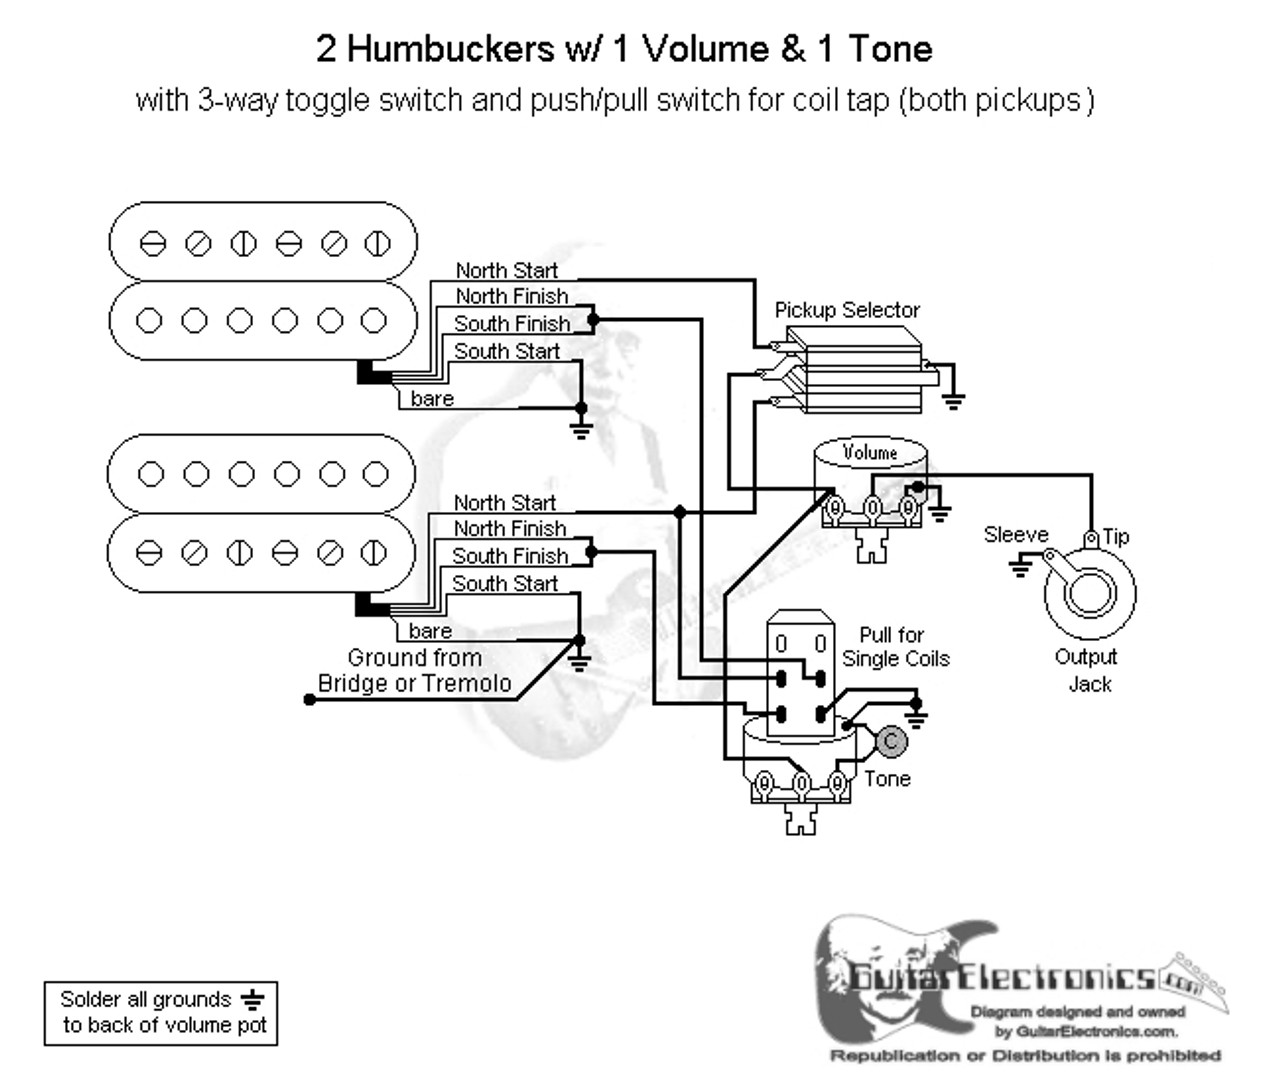 small resolution of wiring diagrams single humbucker guitar pick up tone volume and2 humbuckers 3 way toggle switch 1